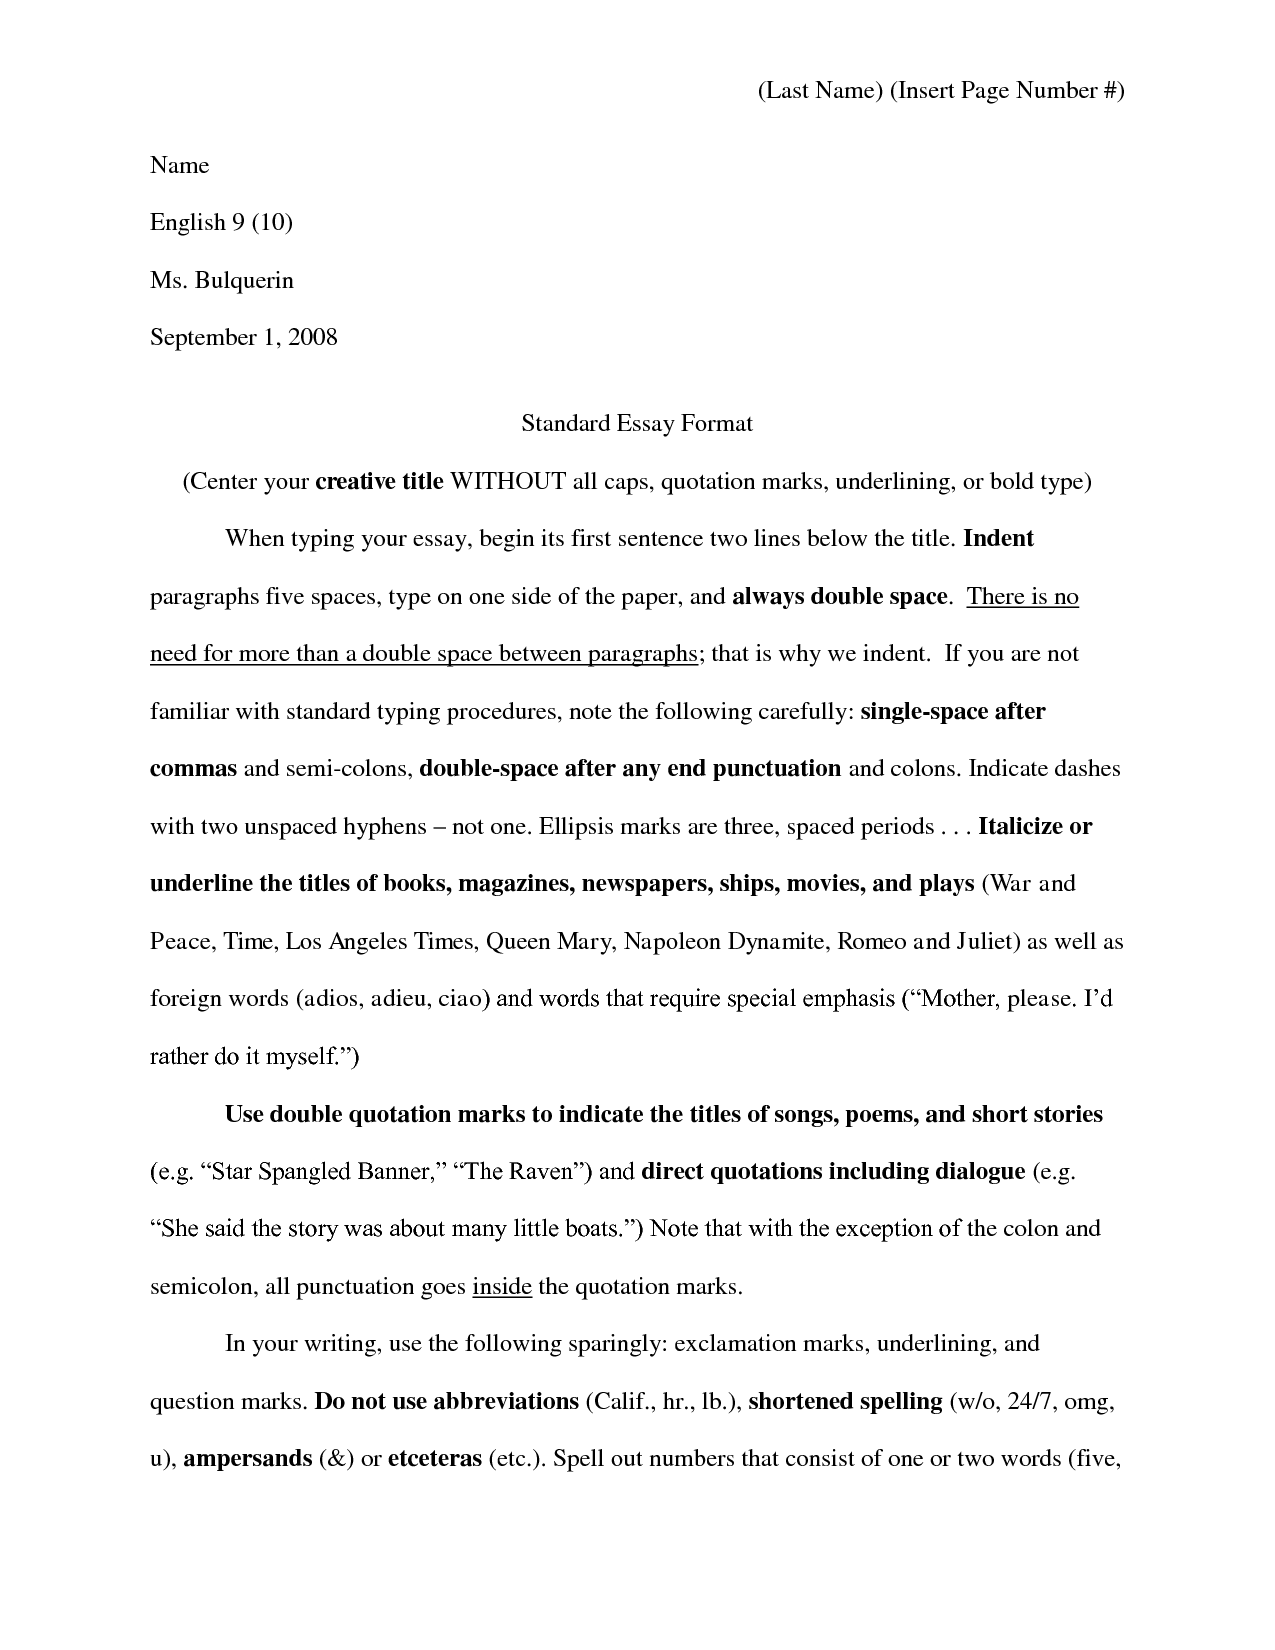 004 Standard Essay Format Example Impressive For College Apa Essay/report Ielts Full